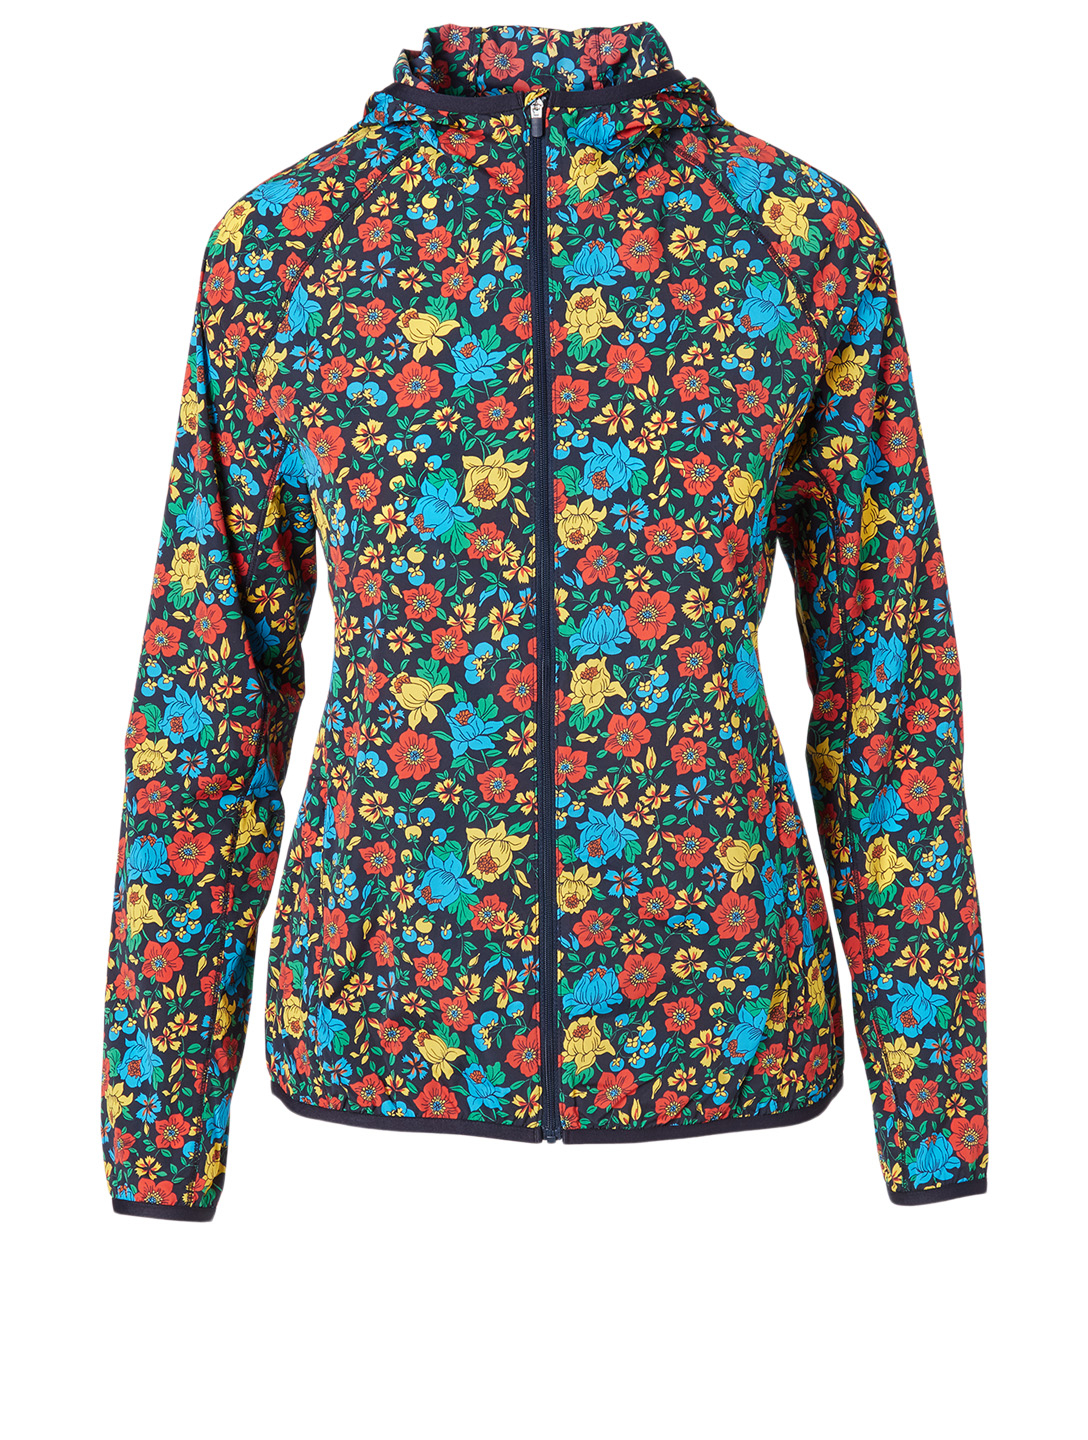 TORY SPORT Nylon Packable Jacket In Primary Flora Print Women's Blue